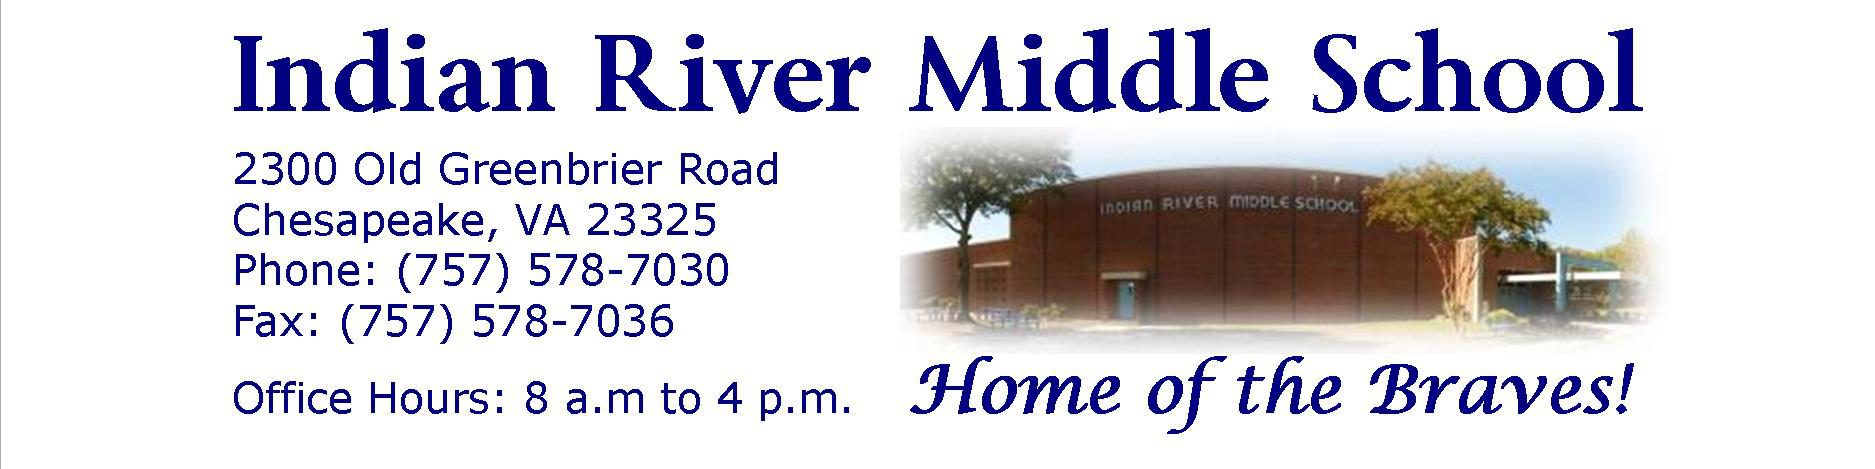 Indian River Middle School